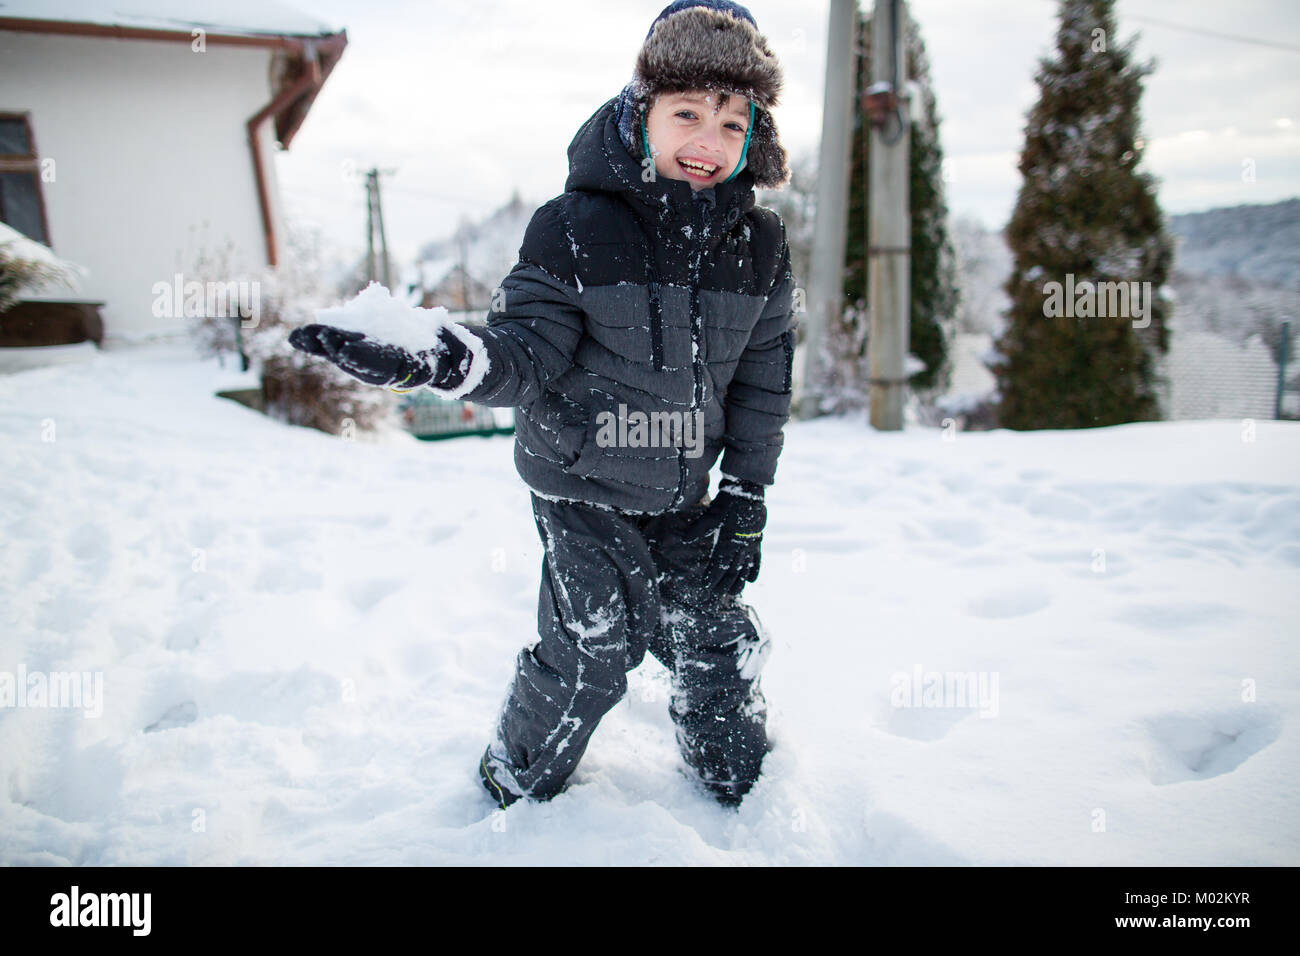 Laughing child in warm clothes having fun during a snowball fight. Boy having fun in the snow. - Stock Image